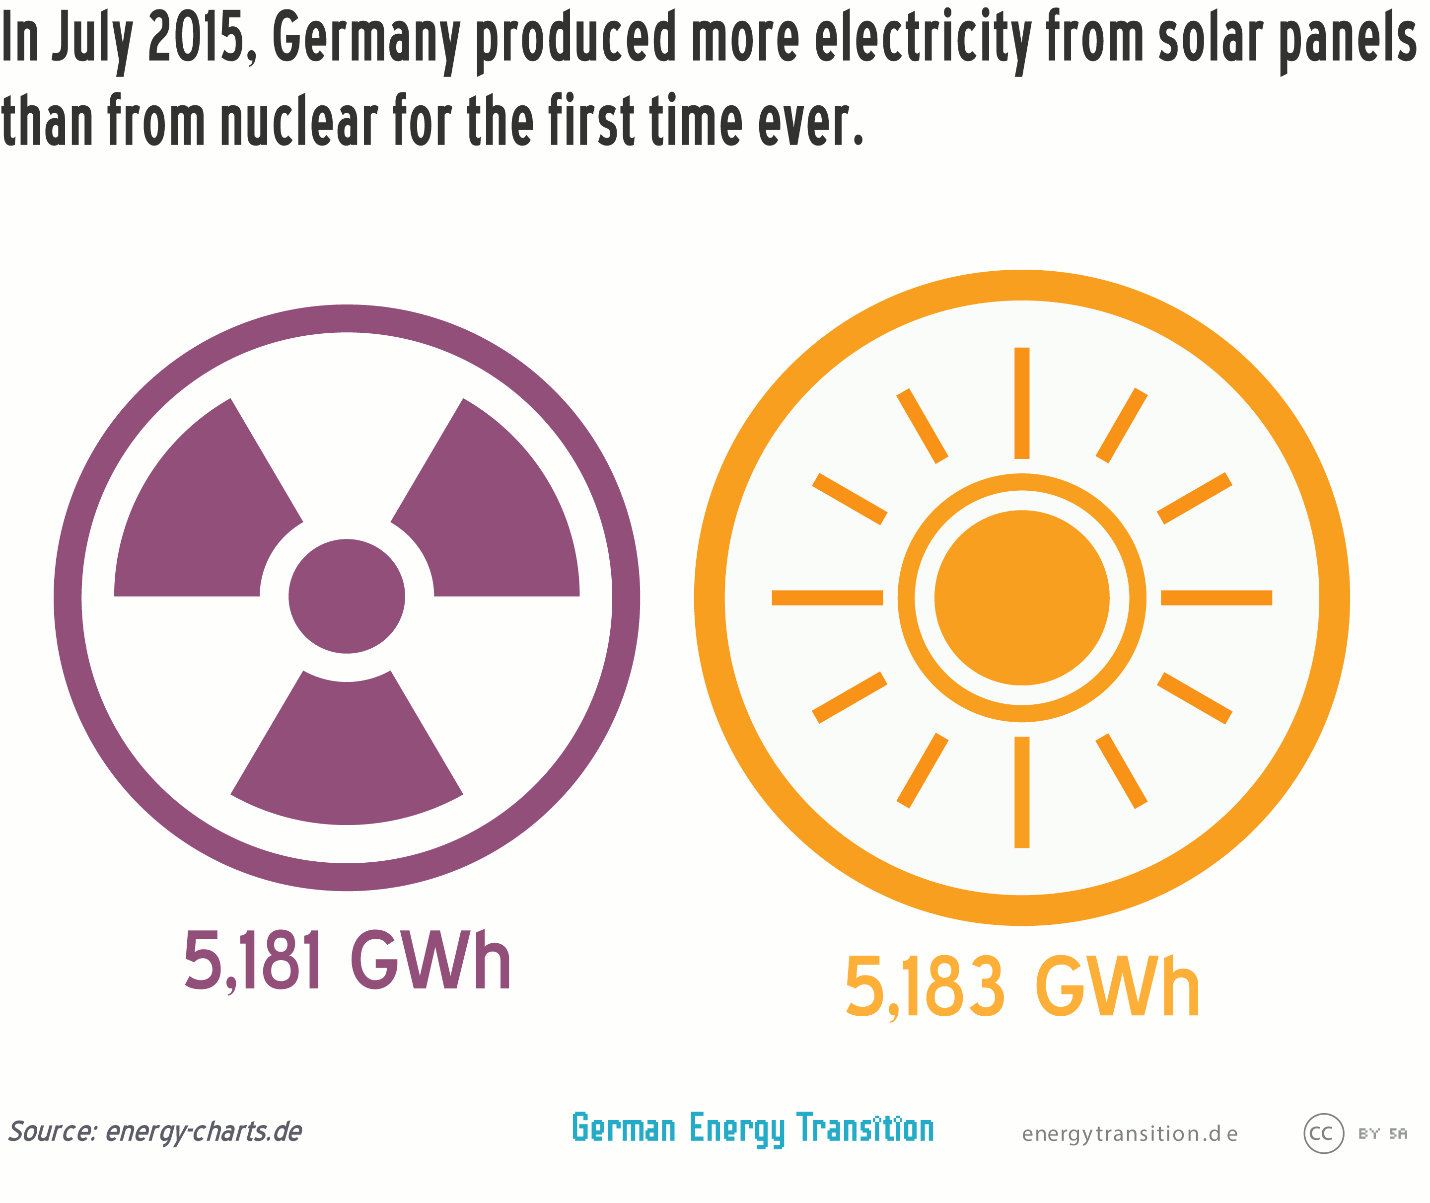 In July 2015, Germany produced more electricity from solar panels than from nuclear